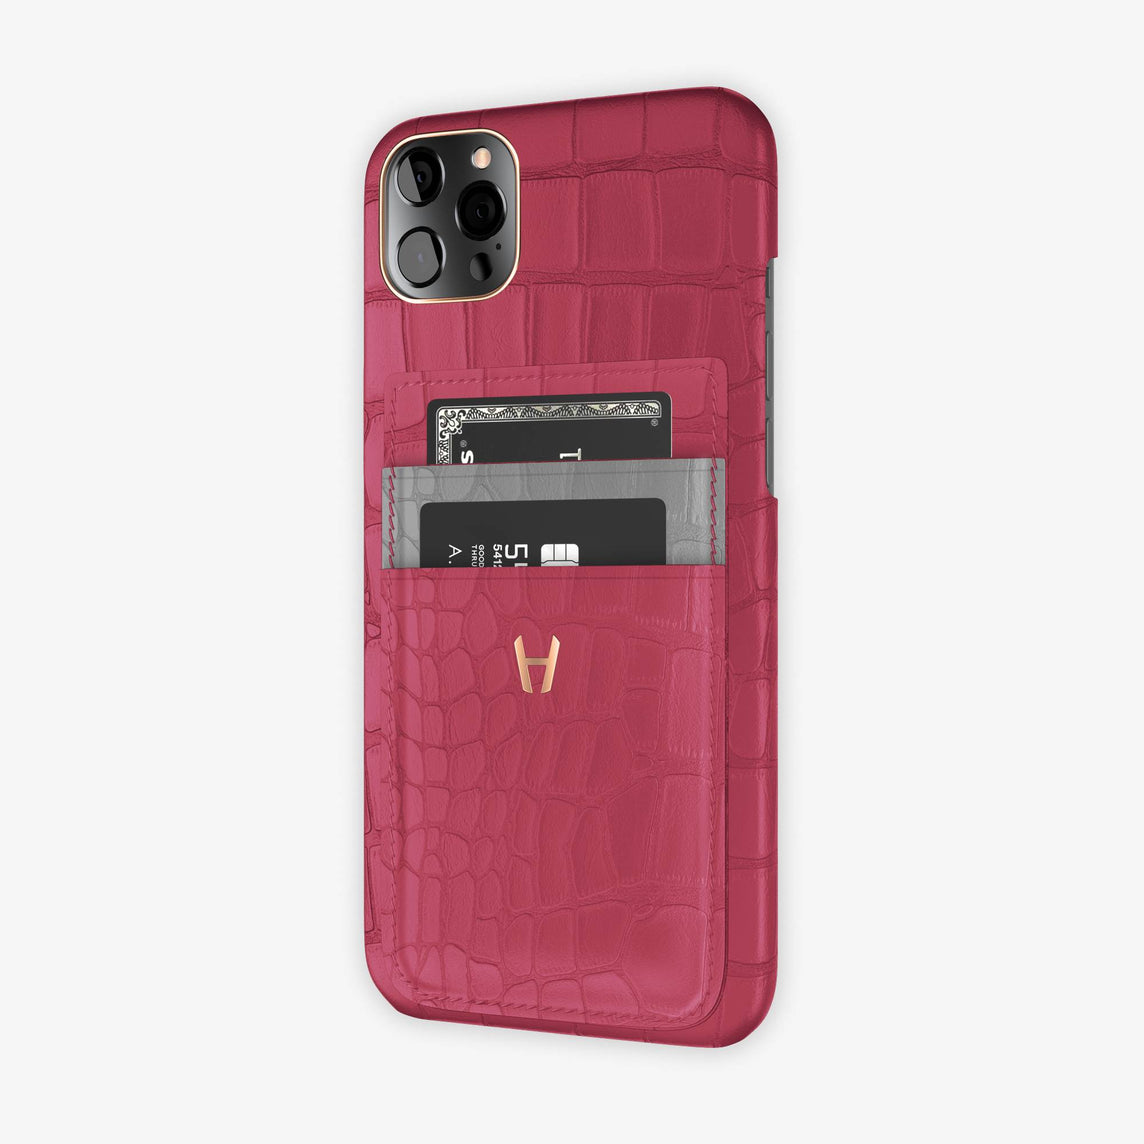 Alligator Pocket Case iPhone 12 Pro Max | Pink Girly/Silver - Rose Gold